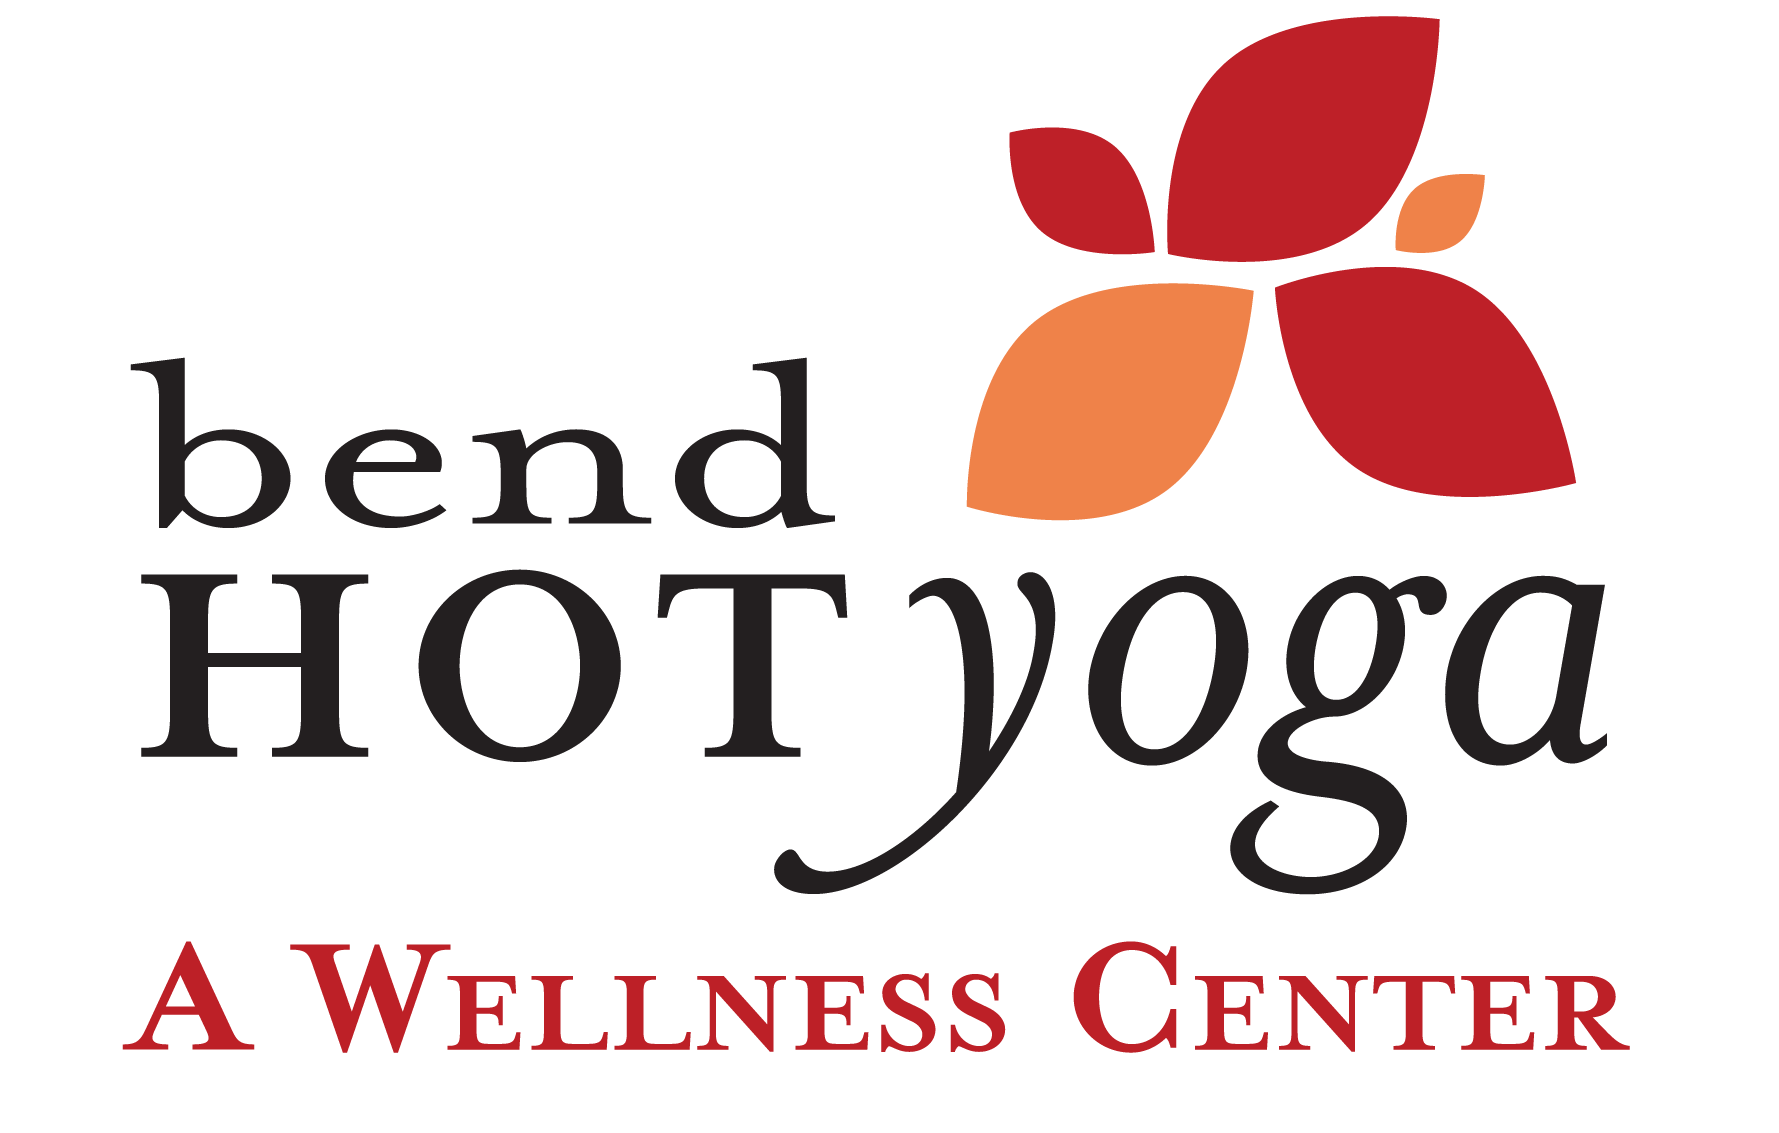 Bend Hot Yoga A Wellness Center | Yoga Bend Oregon